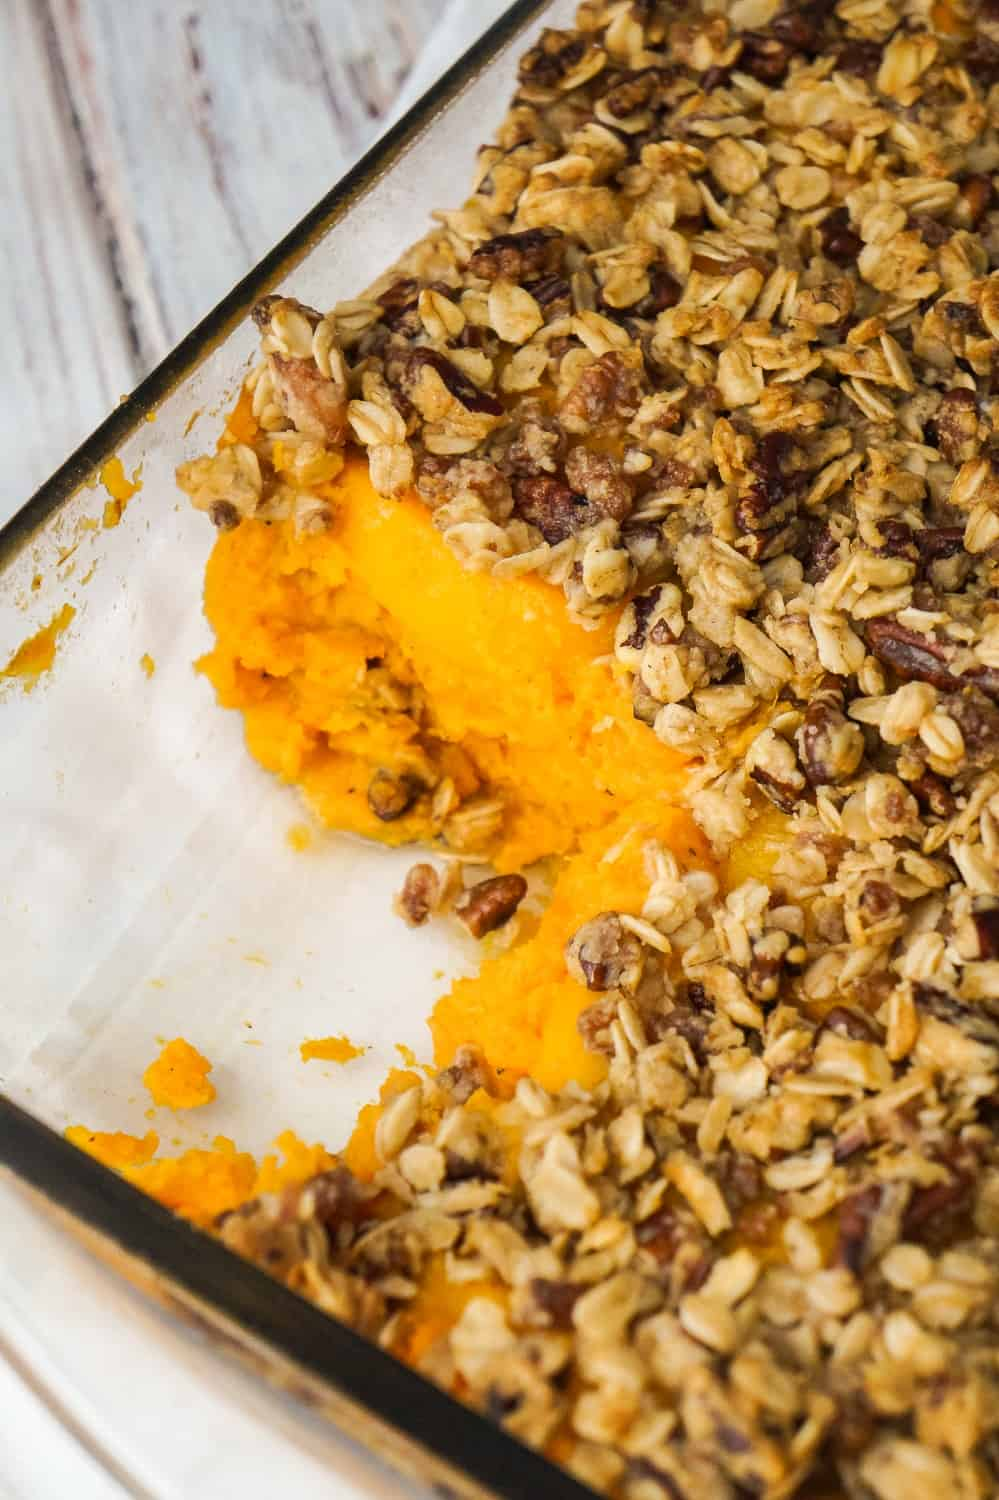 Sweet Potato Casserole with Peaches, Pecans & Bacon is the perfect side dish for a holiday dinner. Creamy mashed sweet potatoes are topped with sliced peaches and an oat crumble with pecans and bacon.